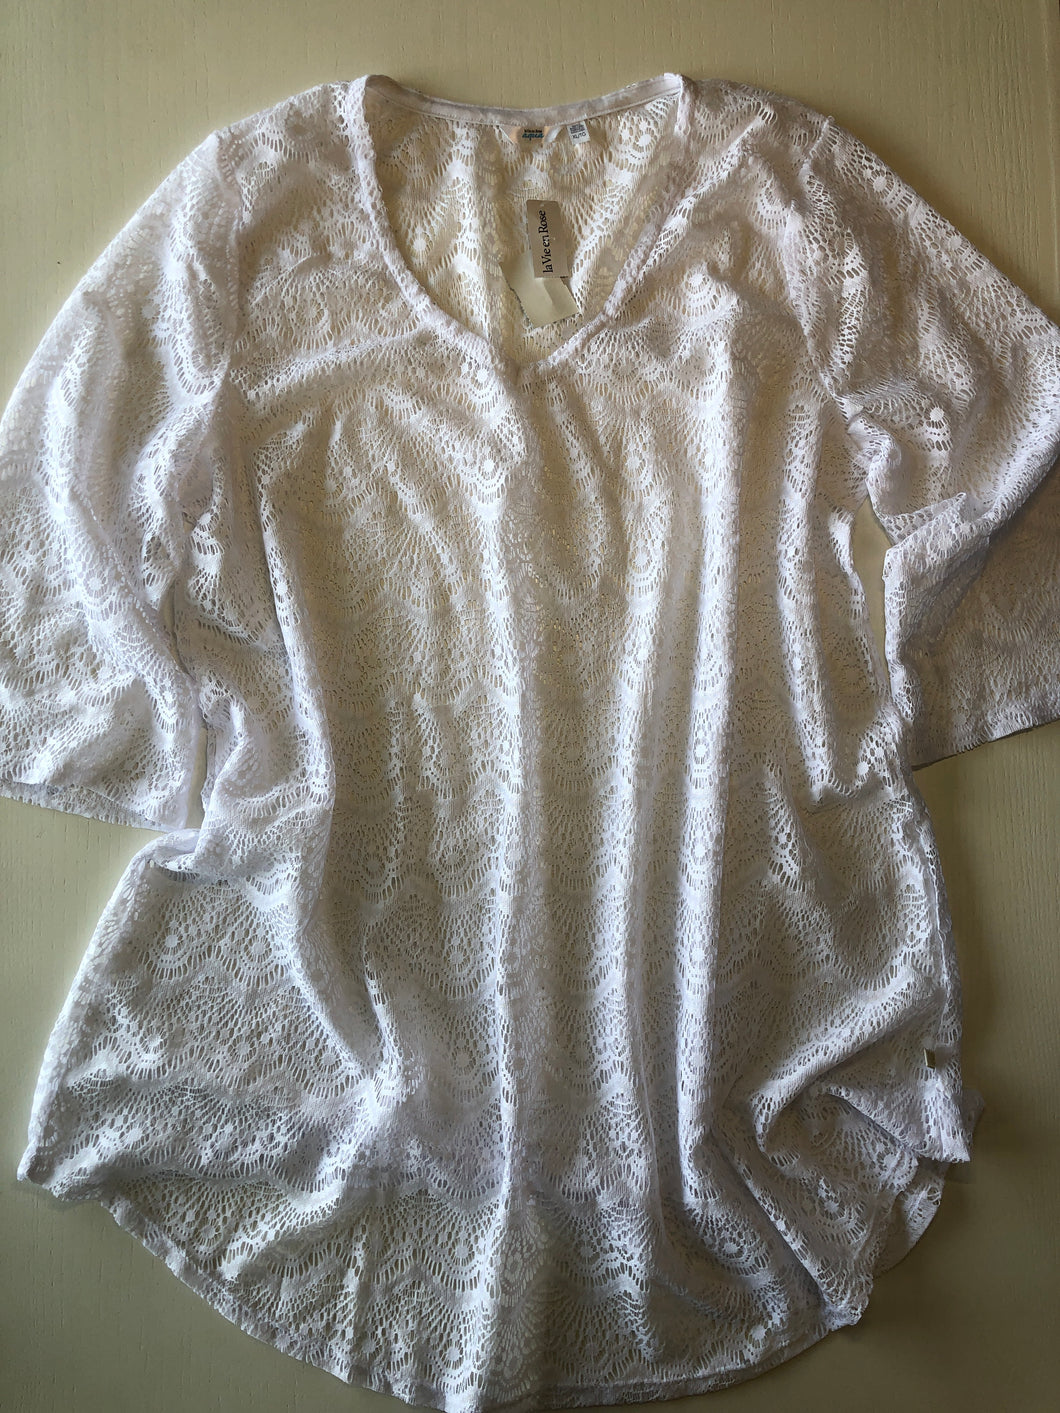 Previously Owned With Tags Women's Aqua Cover Up Size XL